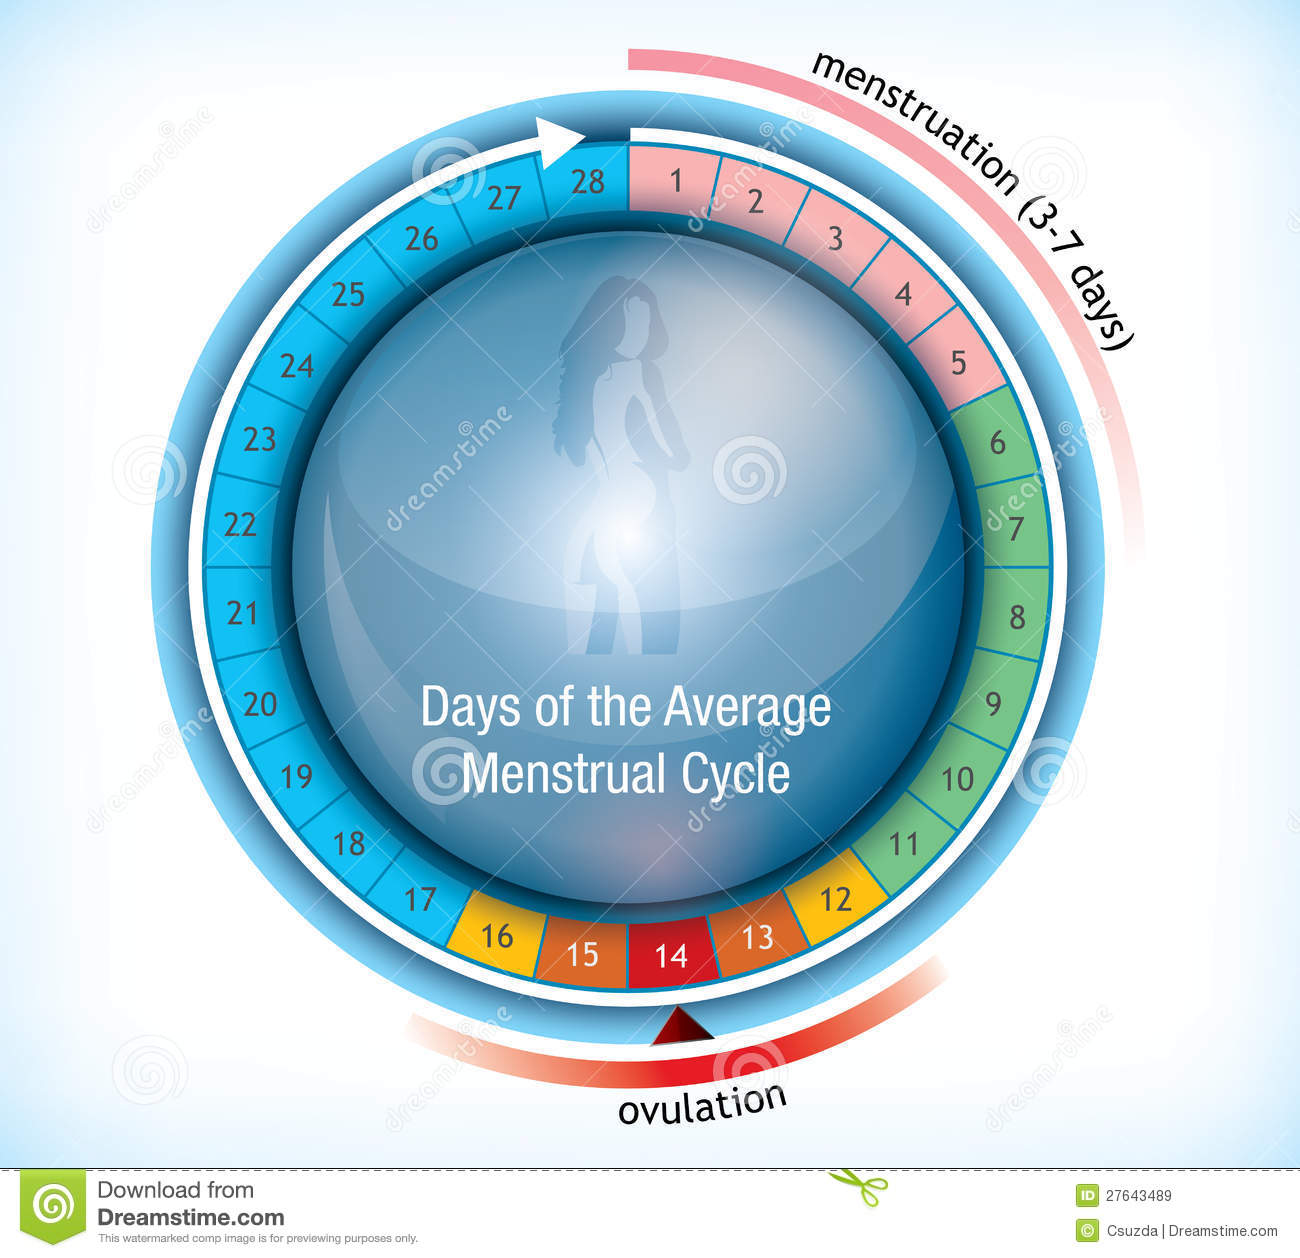 Circular flow chart showing days of menstruation